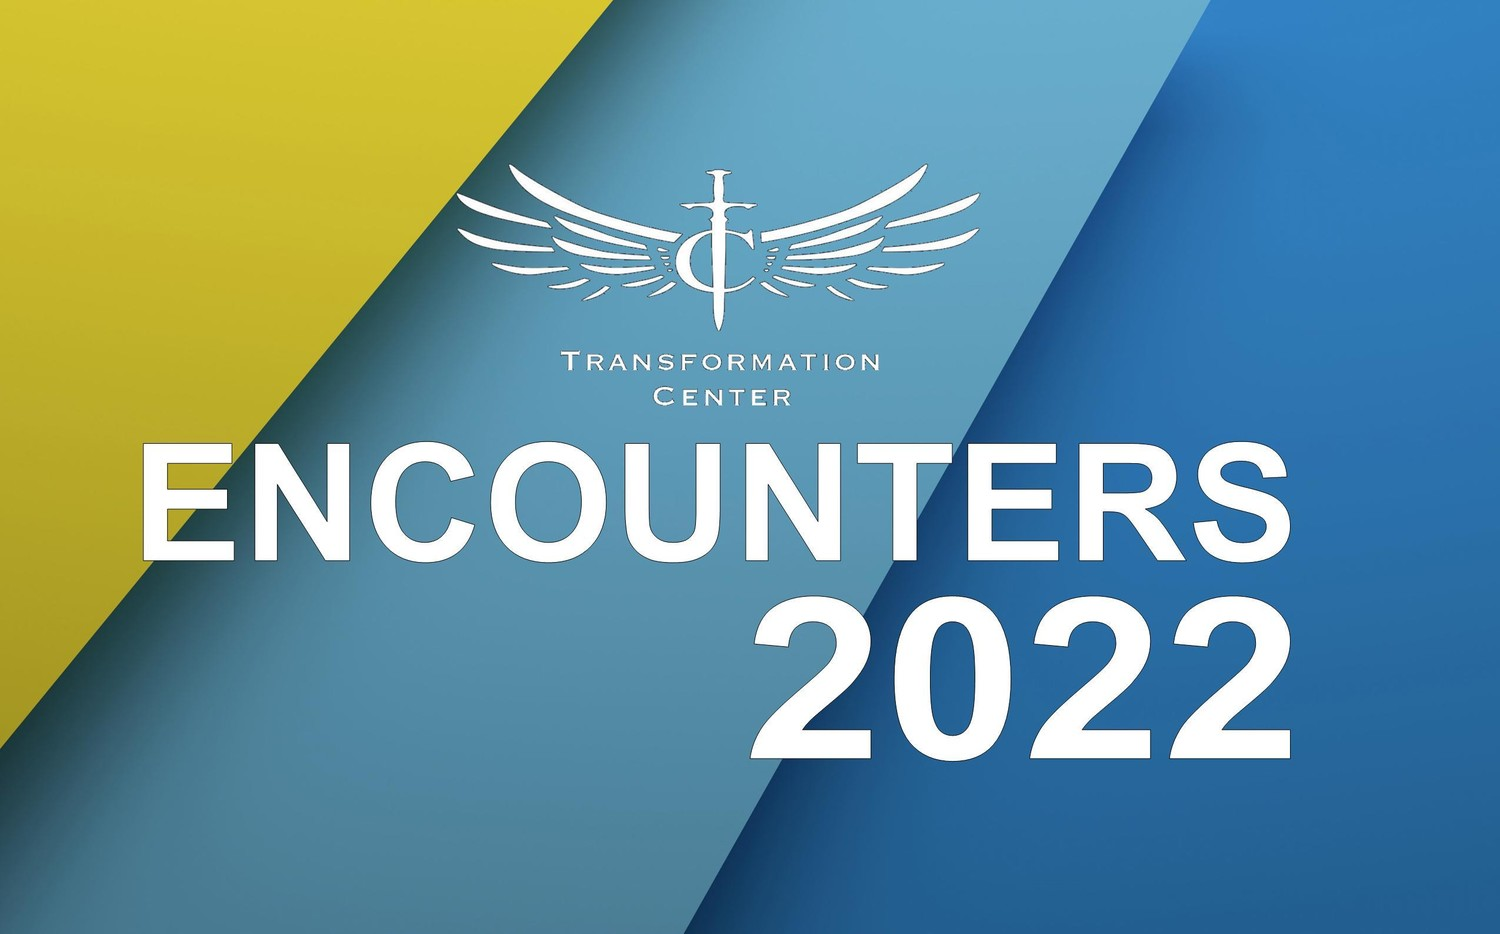 График Инкаунтеров TCCI на 2021 год / Transformation Center Encounters 2020